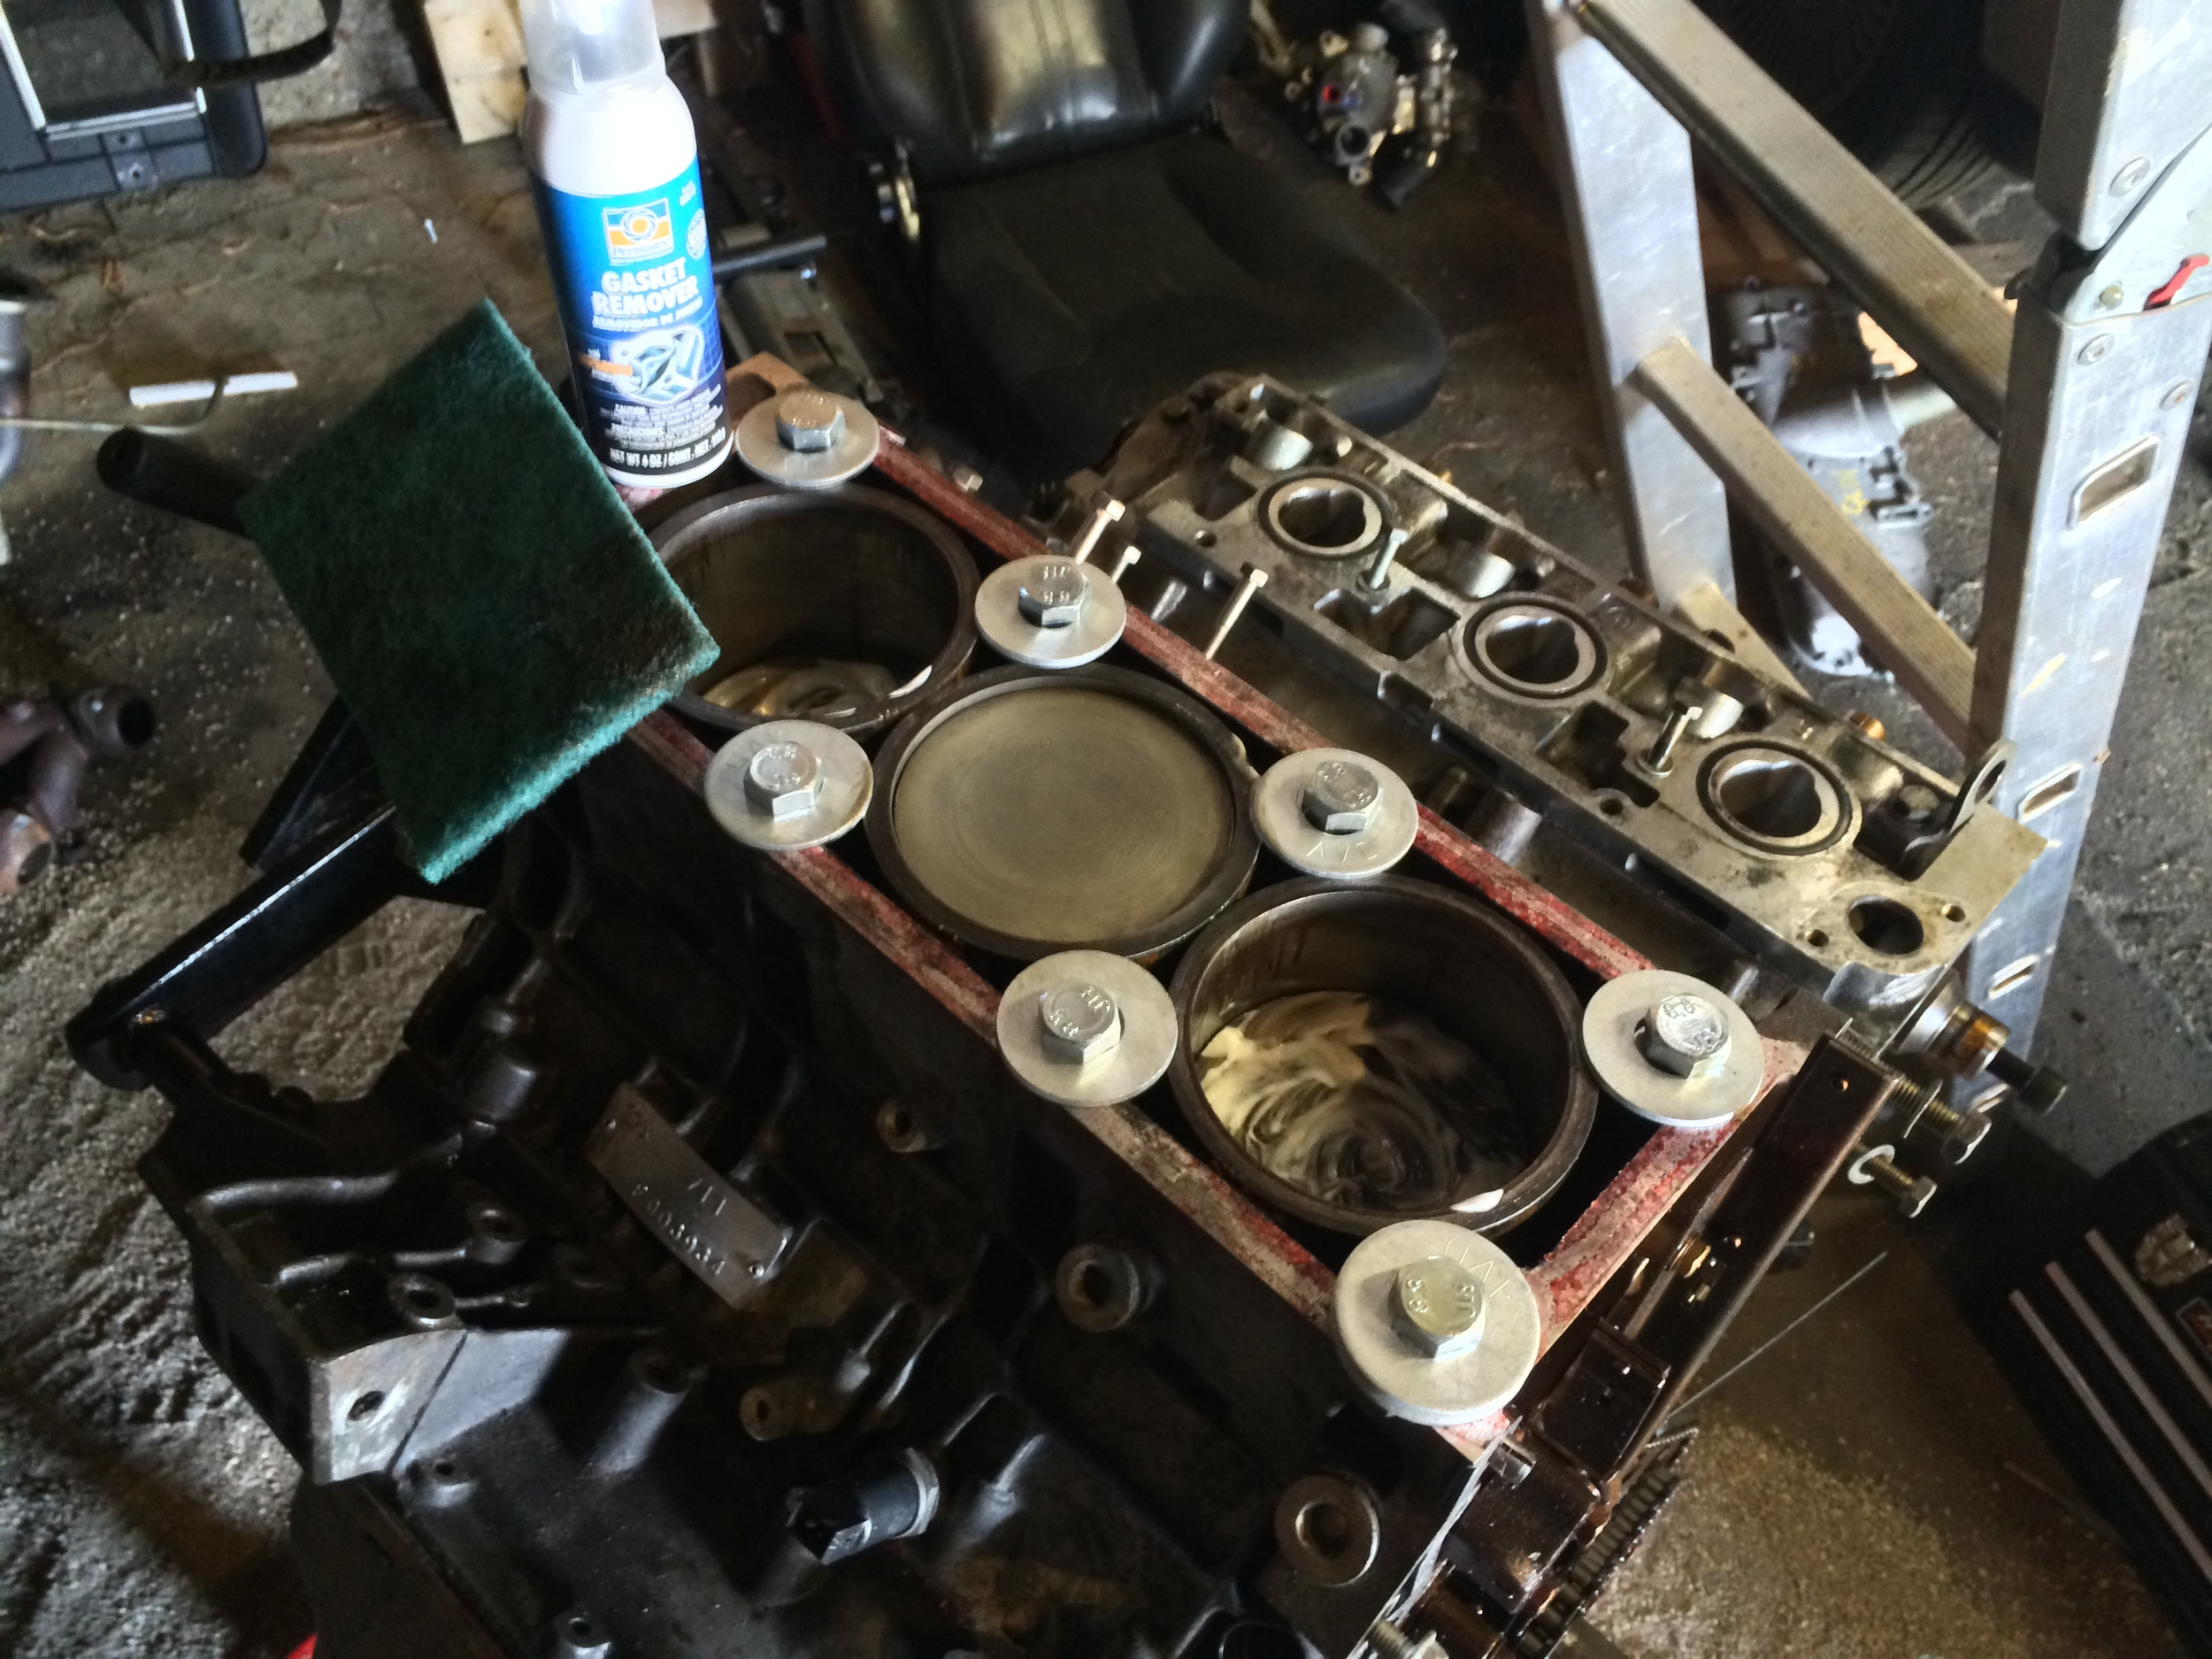 The cleaned-up center piston, and two dirty pistons, along with the Permatex Gasket Remover and a scrubbing pad.